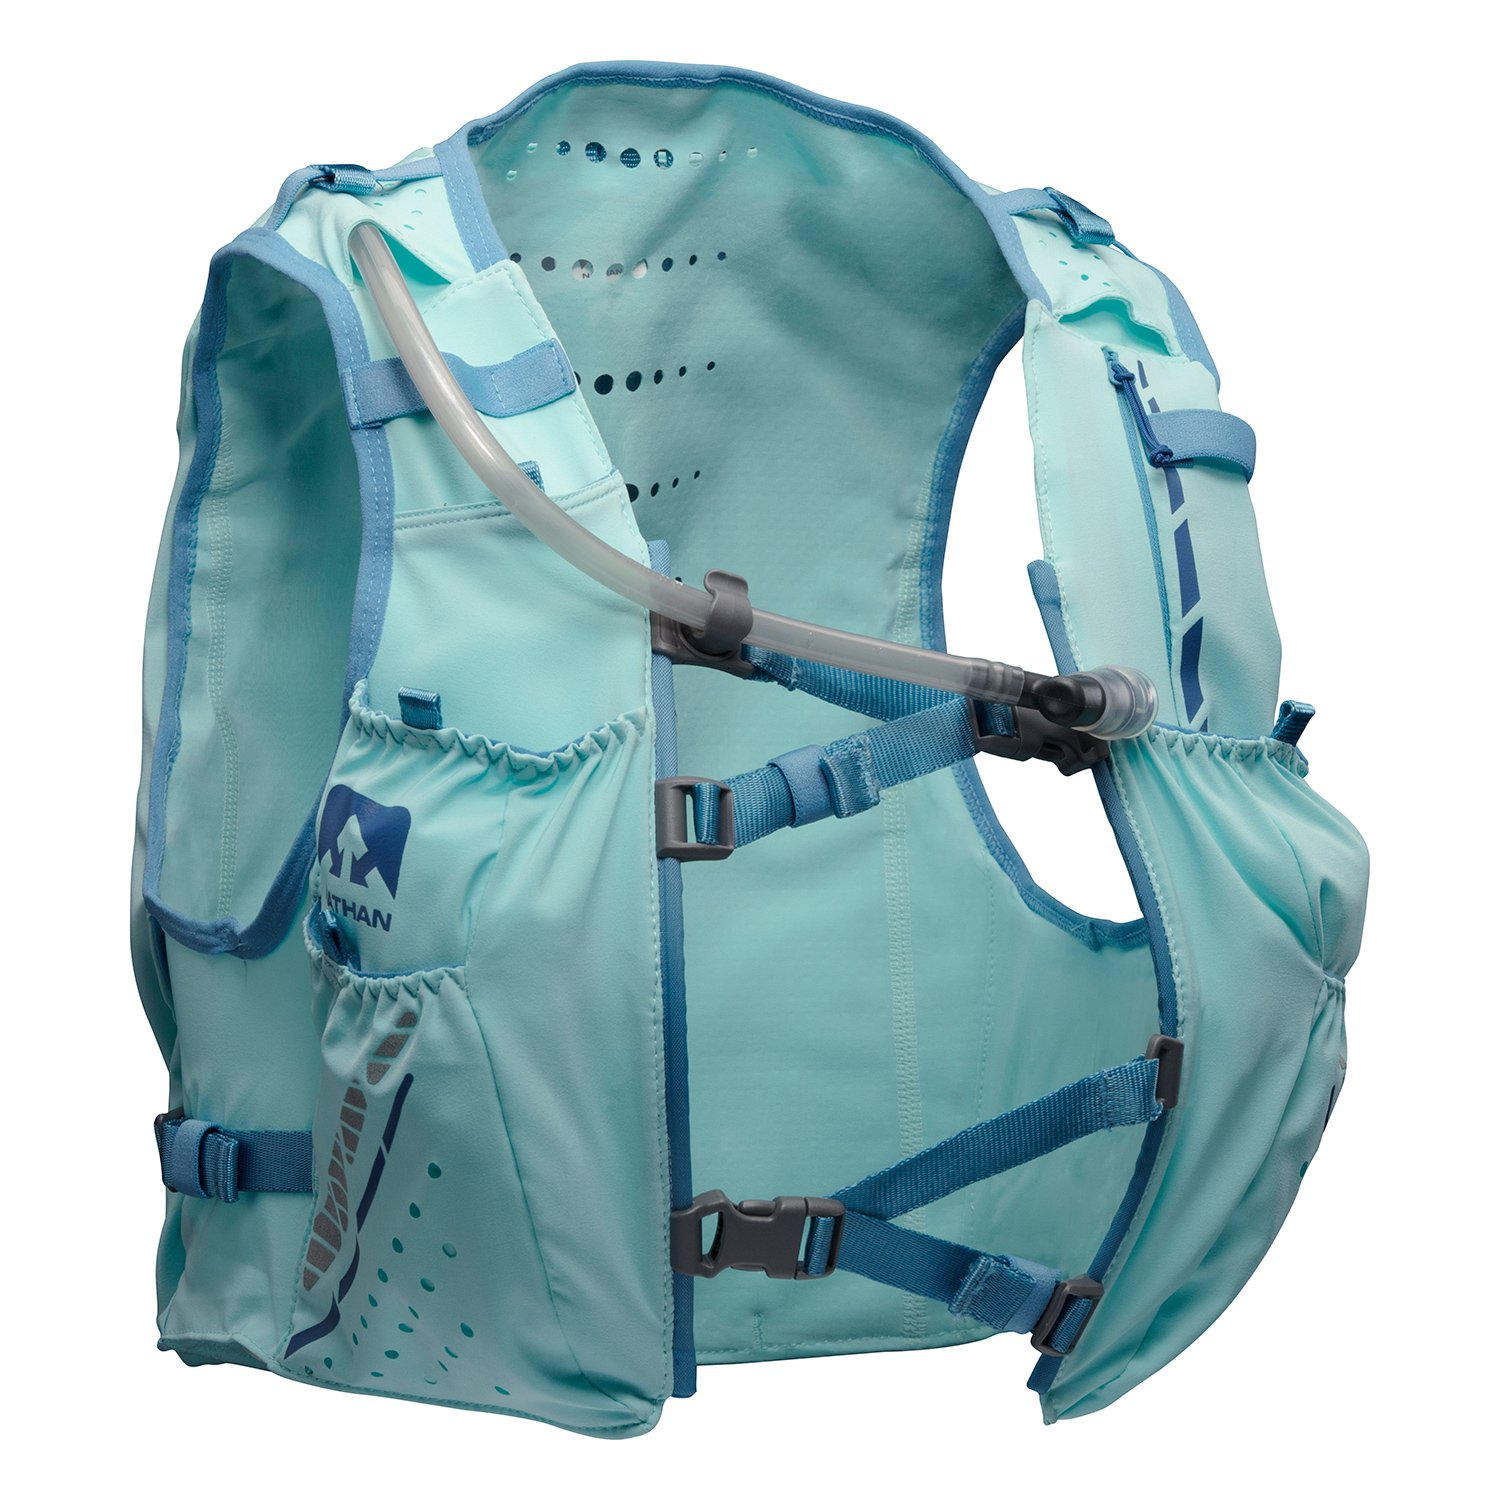 Nathan Vaporhowe Hydration Pack review